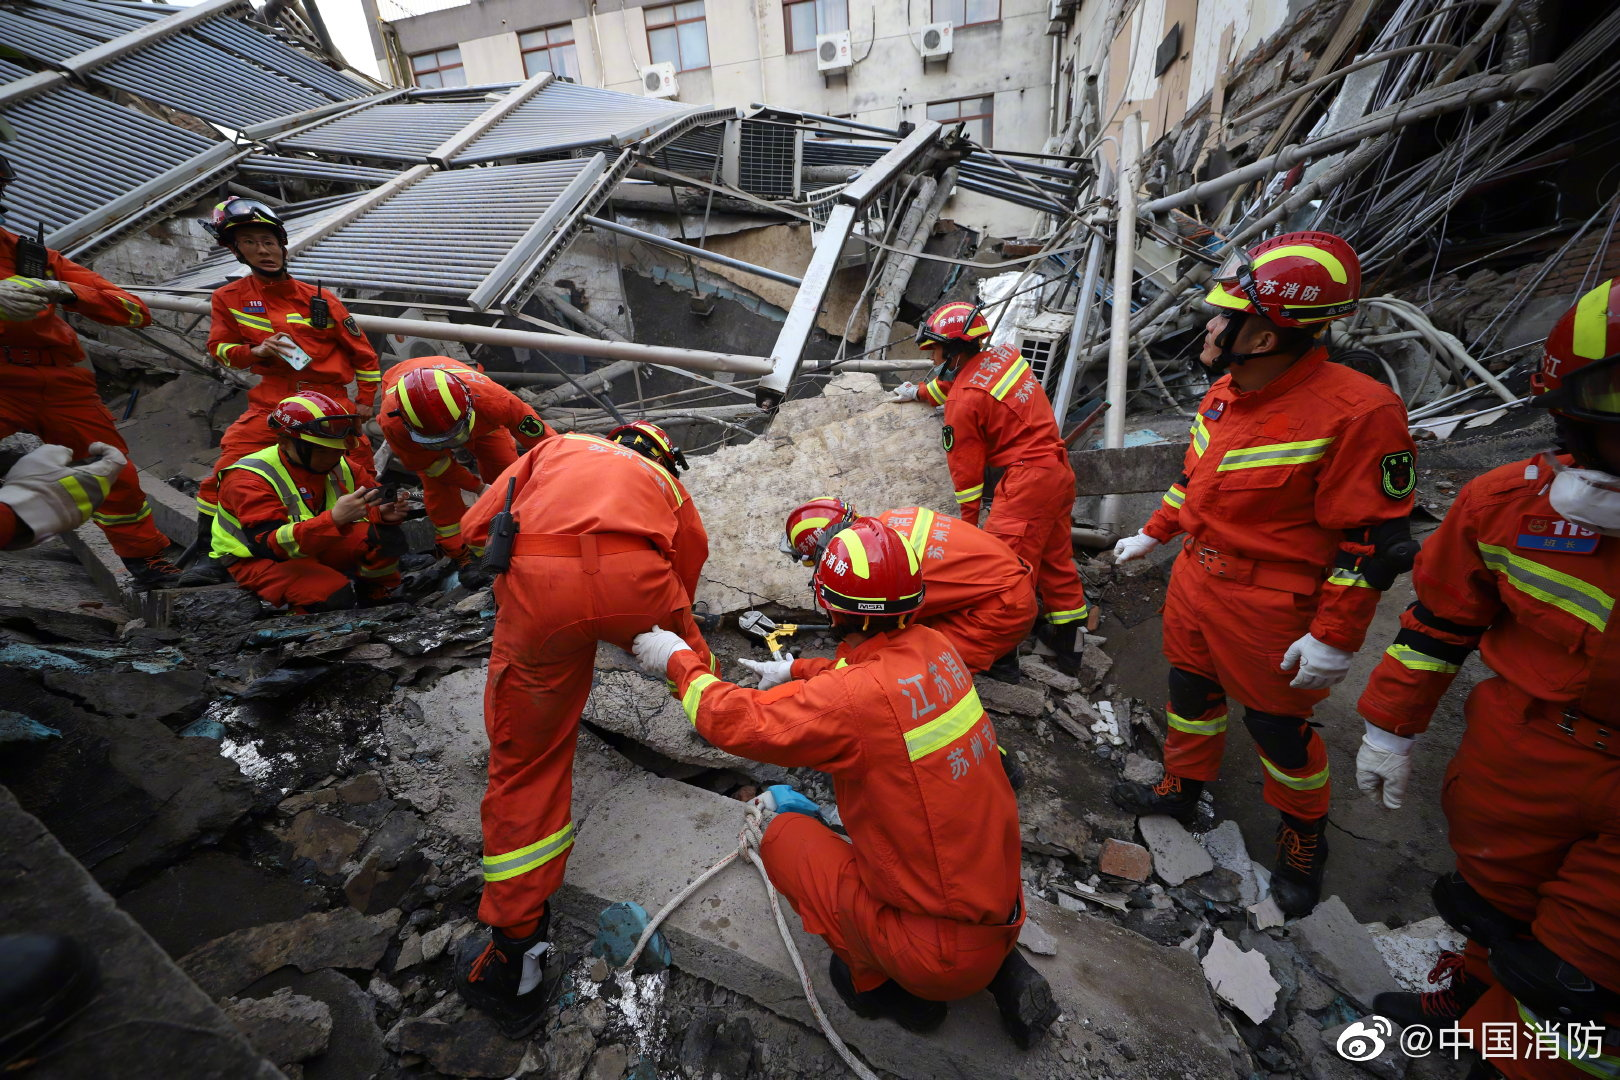 China, After Mocking Surfside Rescue, Hit by Hotel Collapse Disaster